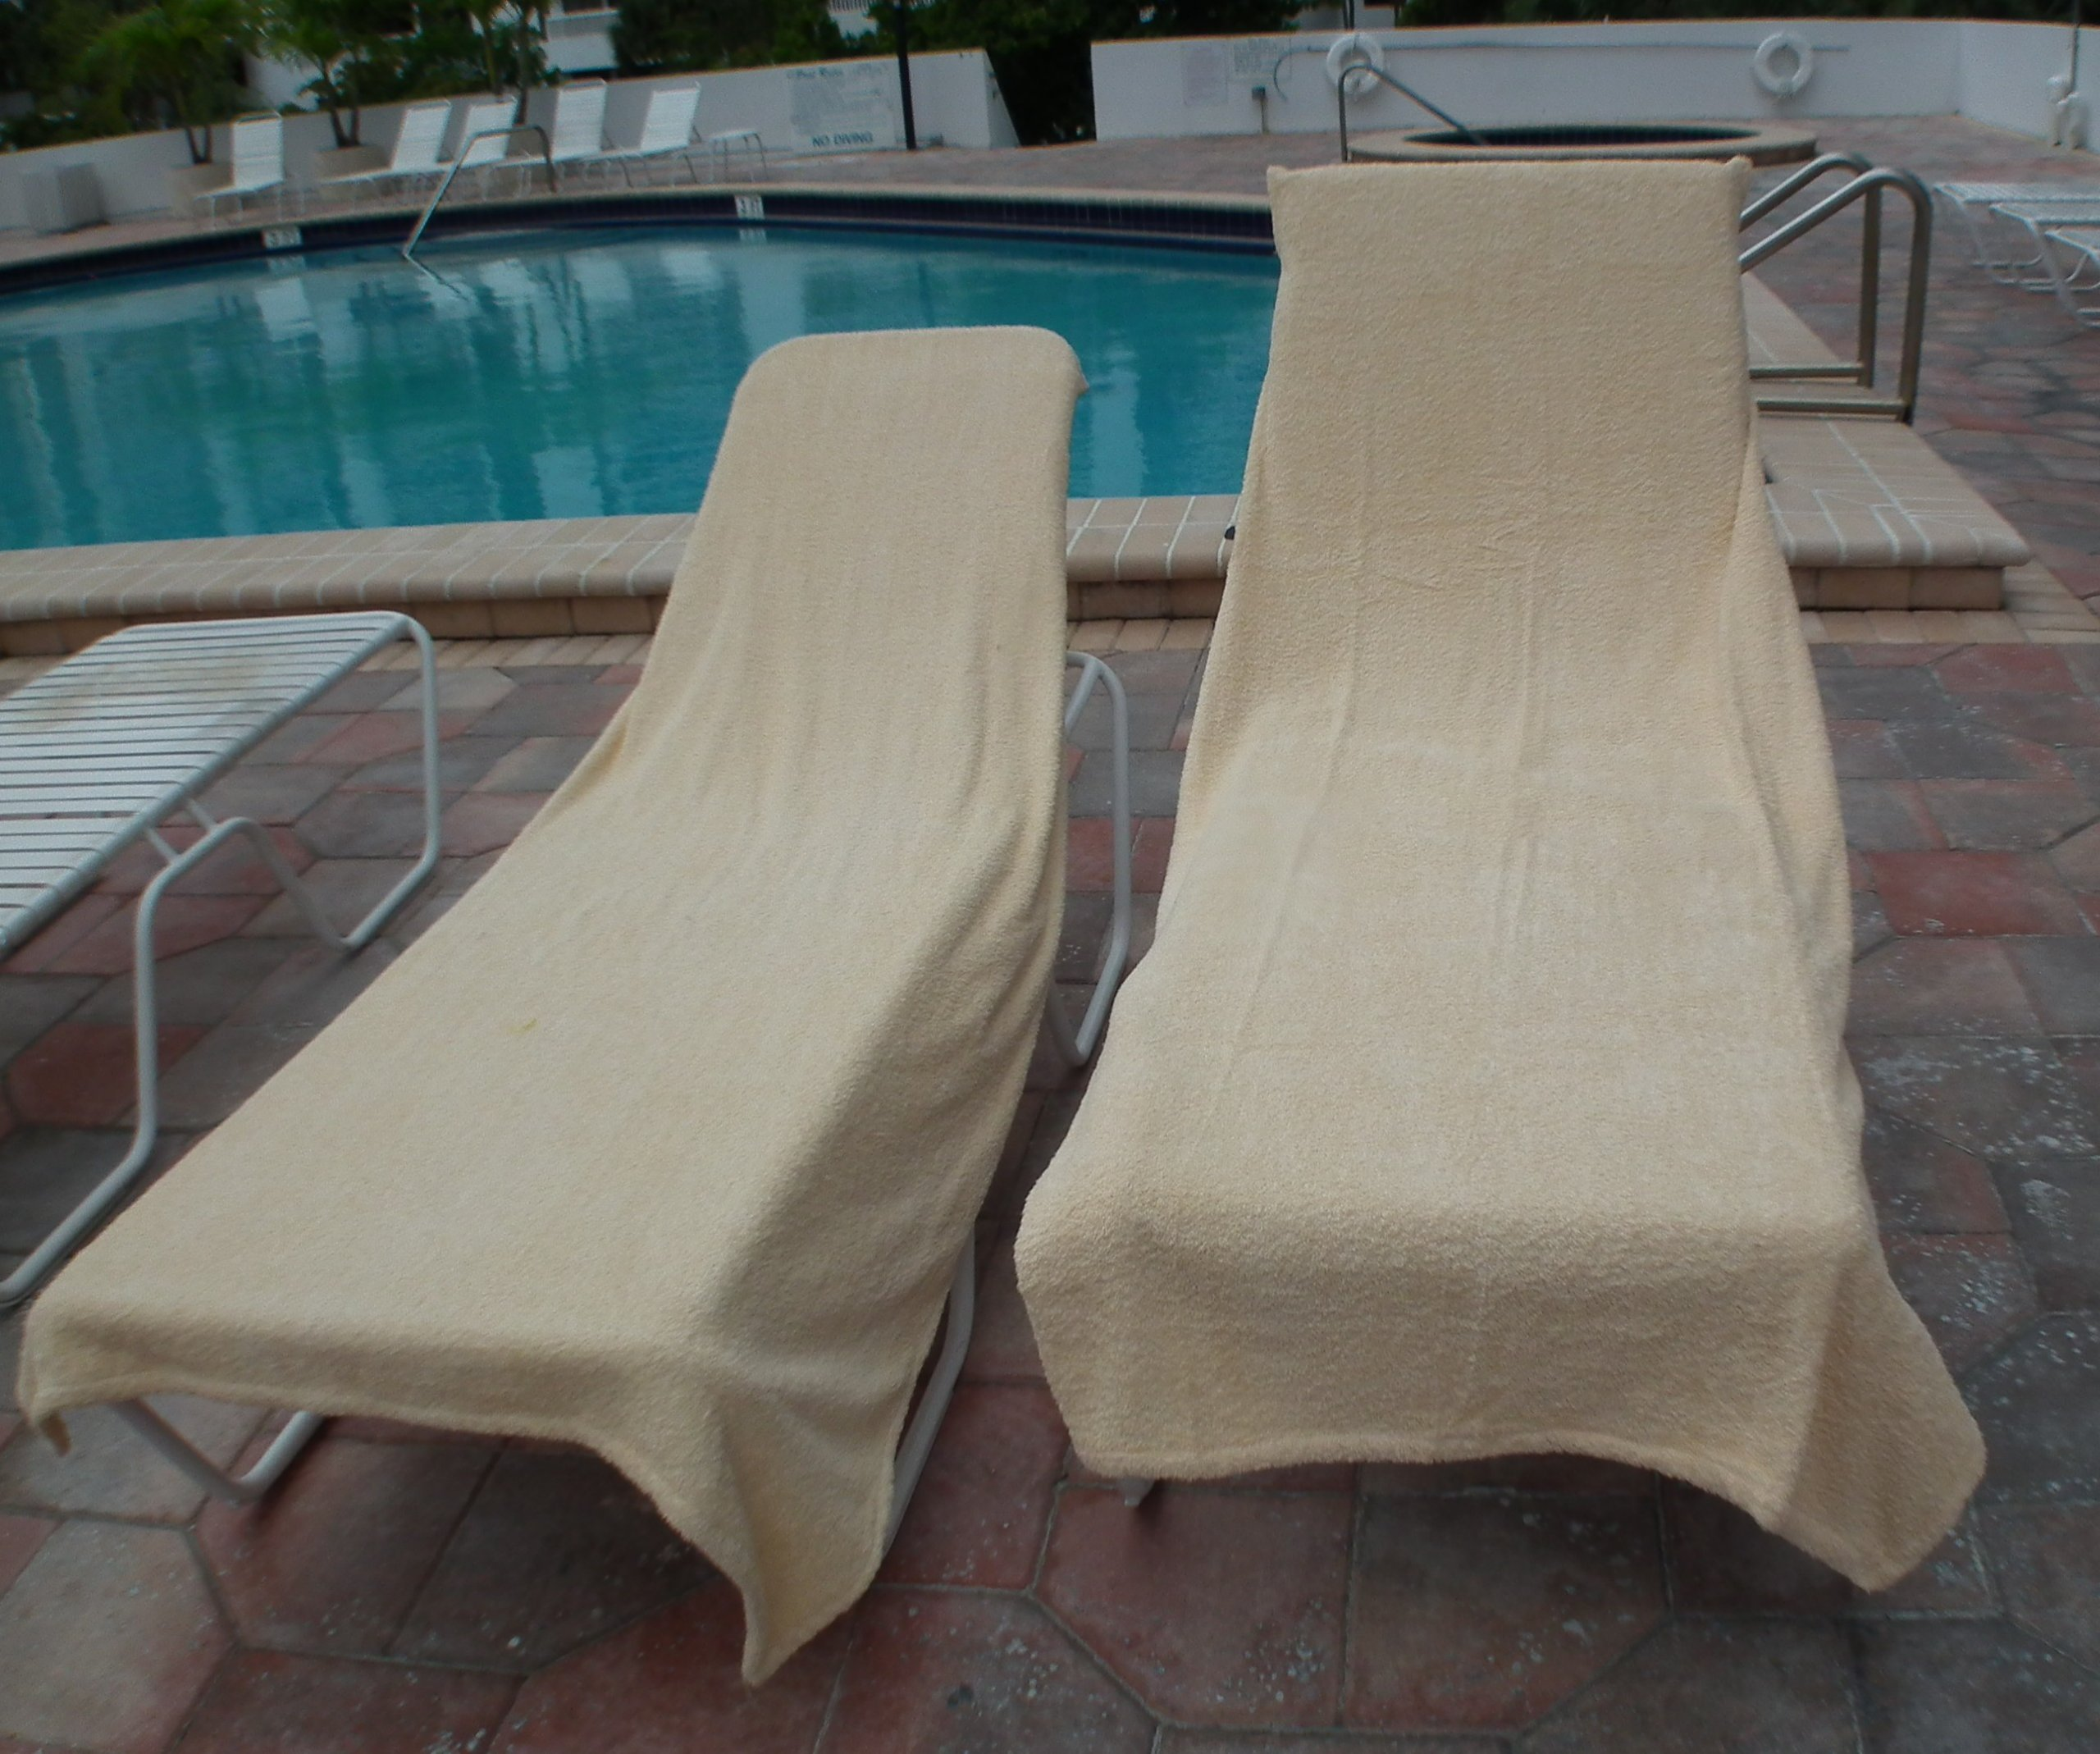 One Terry Chair Lounge Patio SPA Soft Chair Covers Hotel Spa Medium Beige. One only